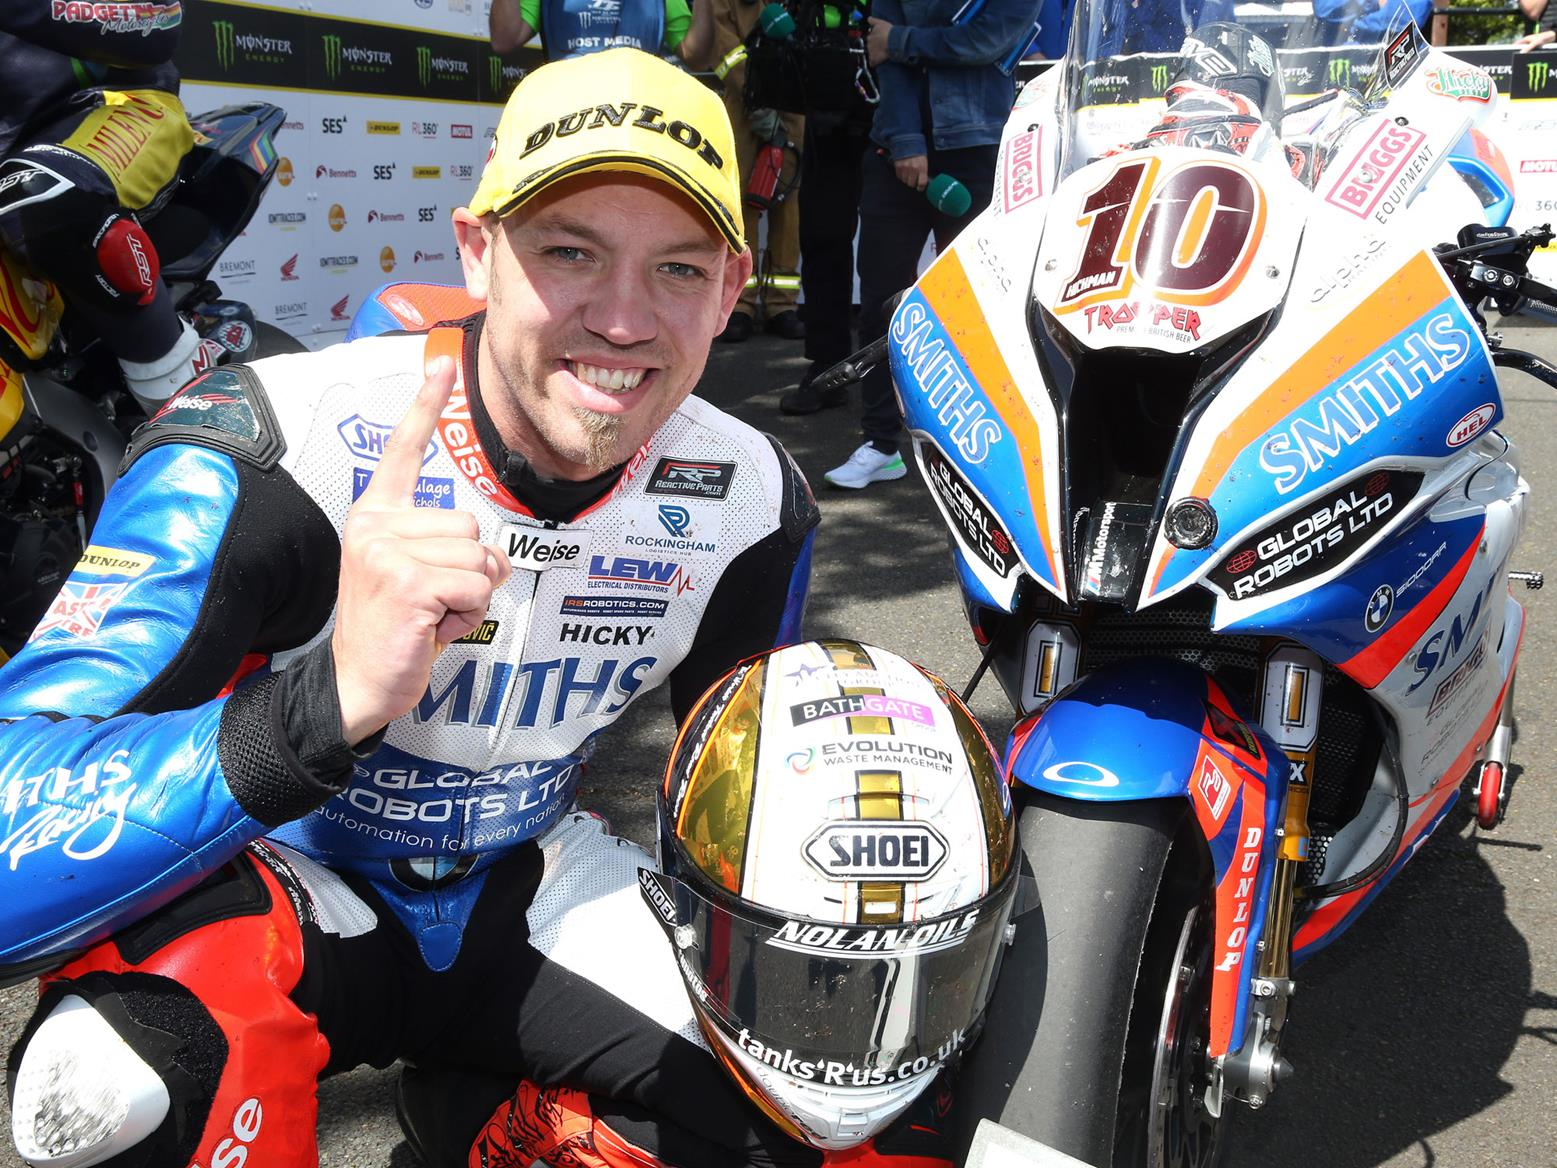 Peter Hickman wins the Superbike race at the Isle of Man TT